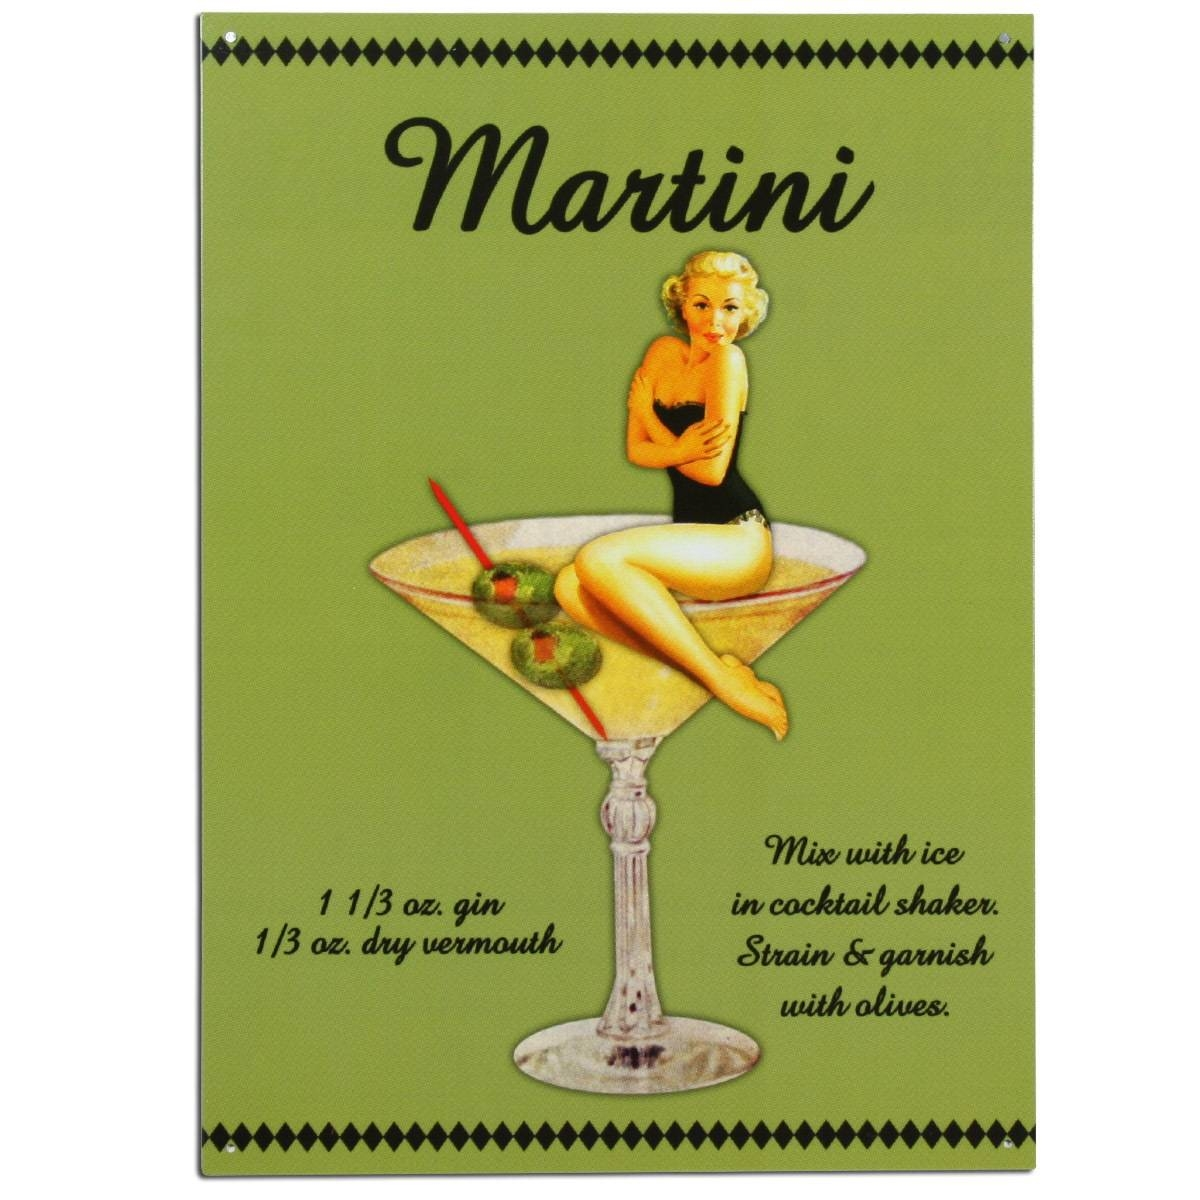 Martini Cocktail Recipe Pinup Girl Metal Sign | Bar Decor Intended For Recent Martini Metal Wall Art (View 17 of 30)